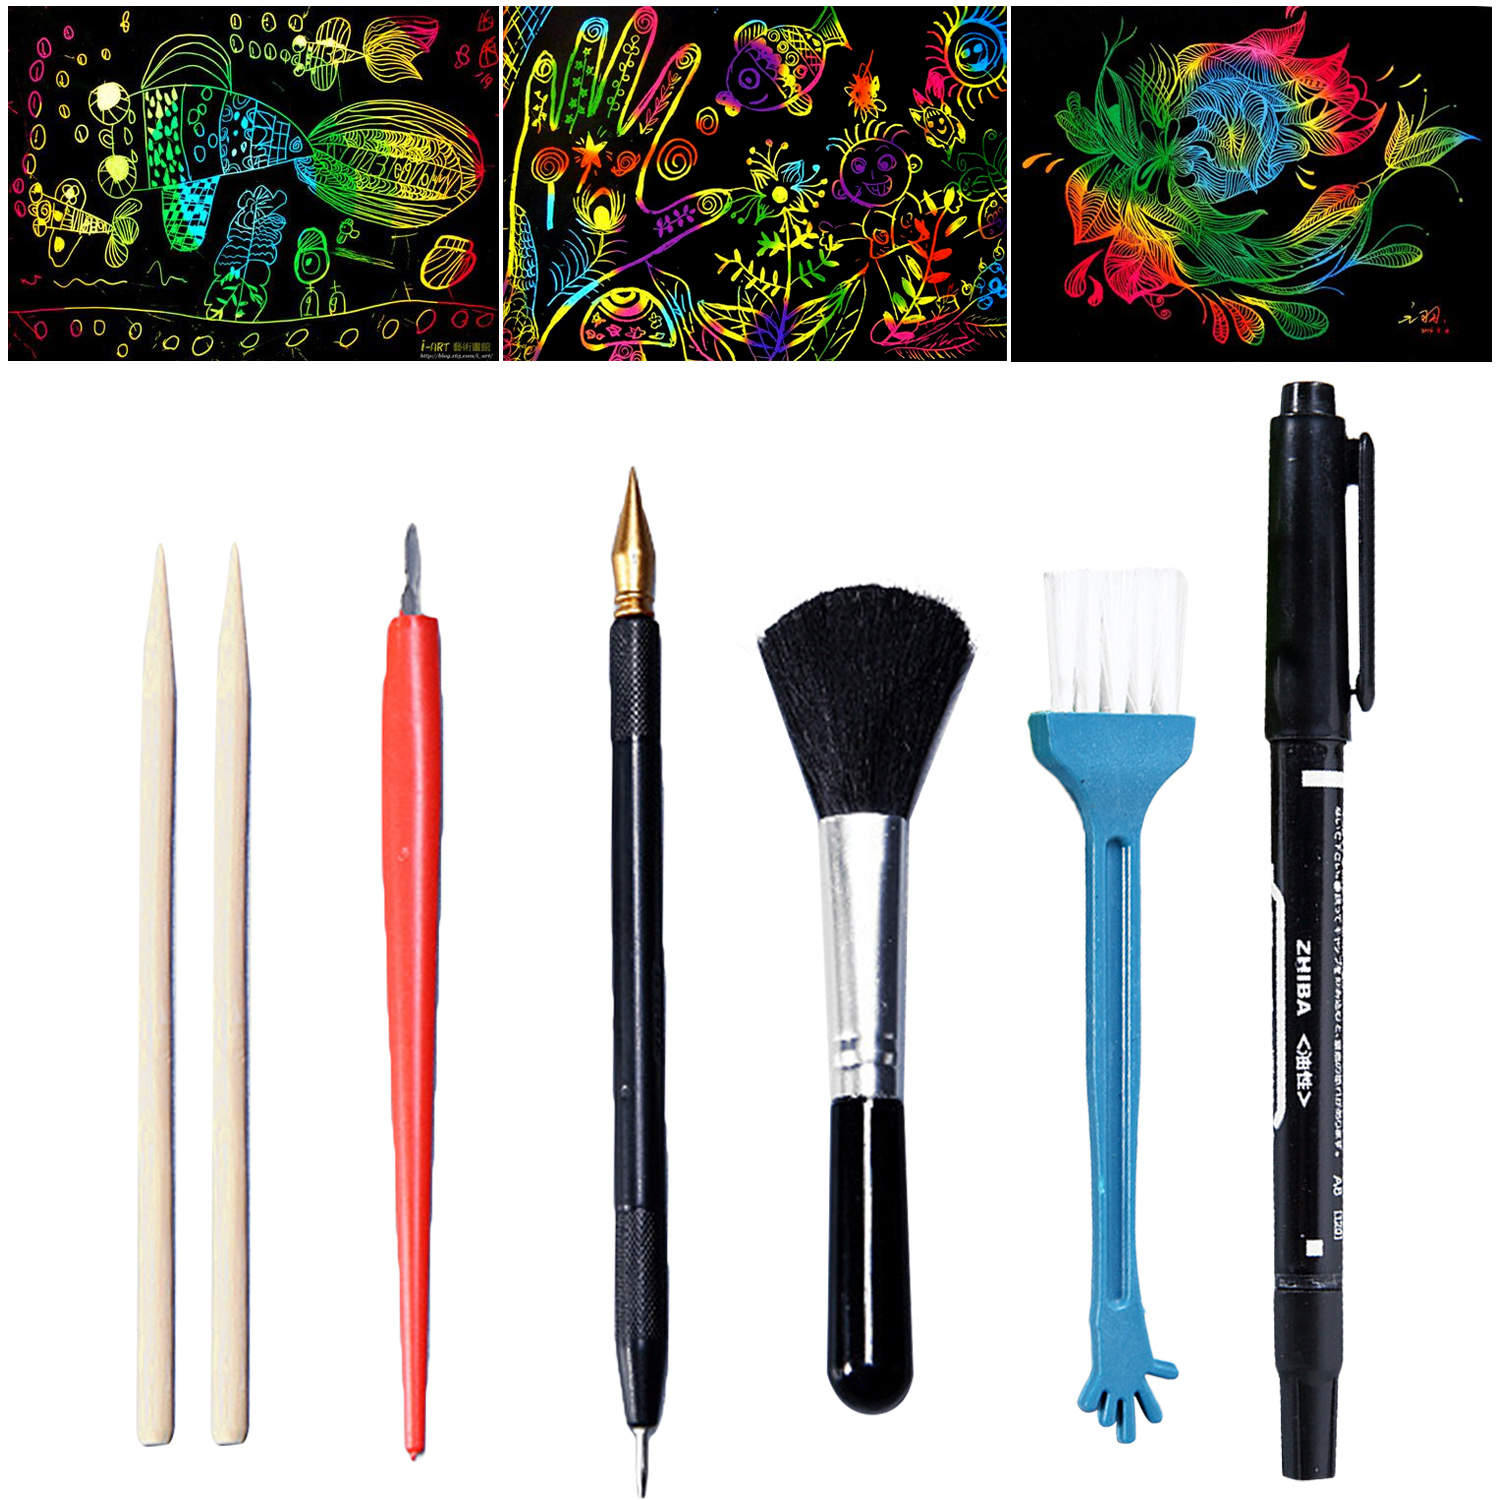 7Pcs Scratch Tools Set With Bamboo Sticks Scraper Repair Scratch Pen Black Brush Painting Toys Kids Children Birthday Gifts